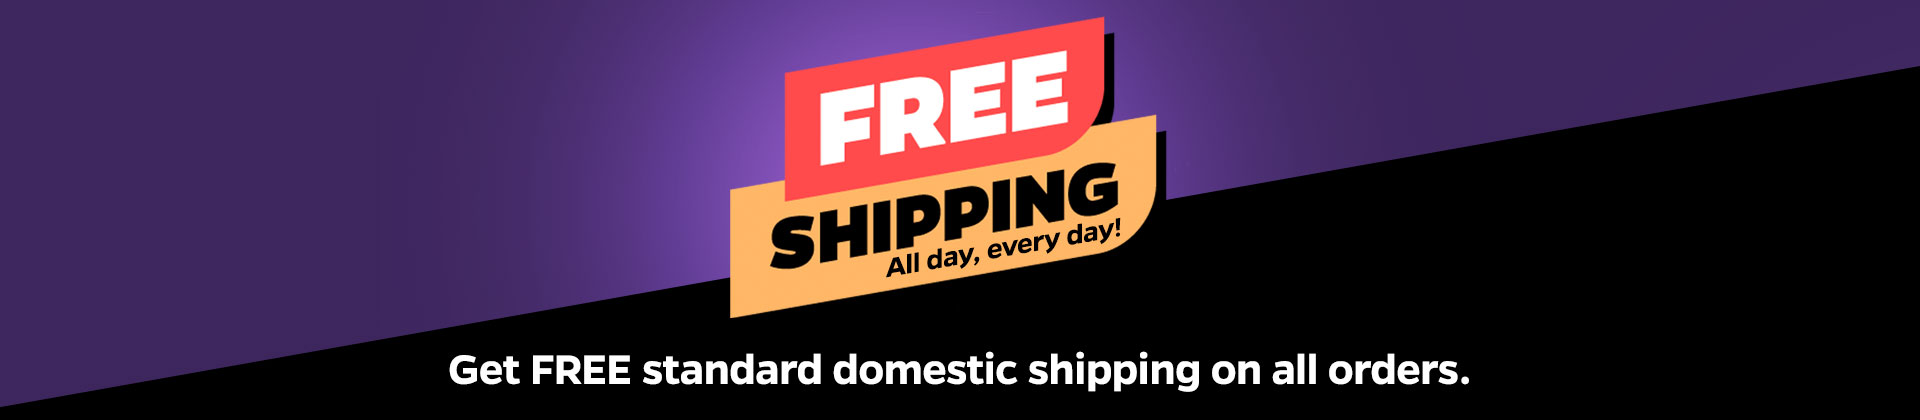 New Look + Free Shipping All Day Every Day